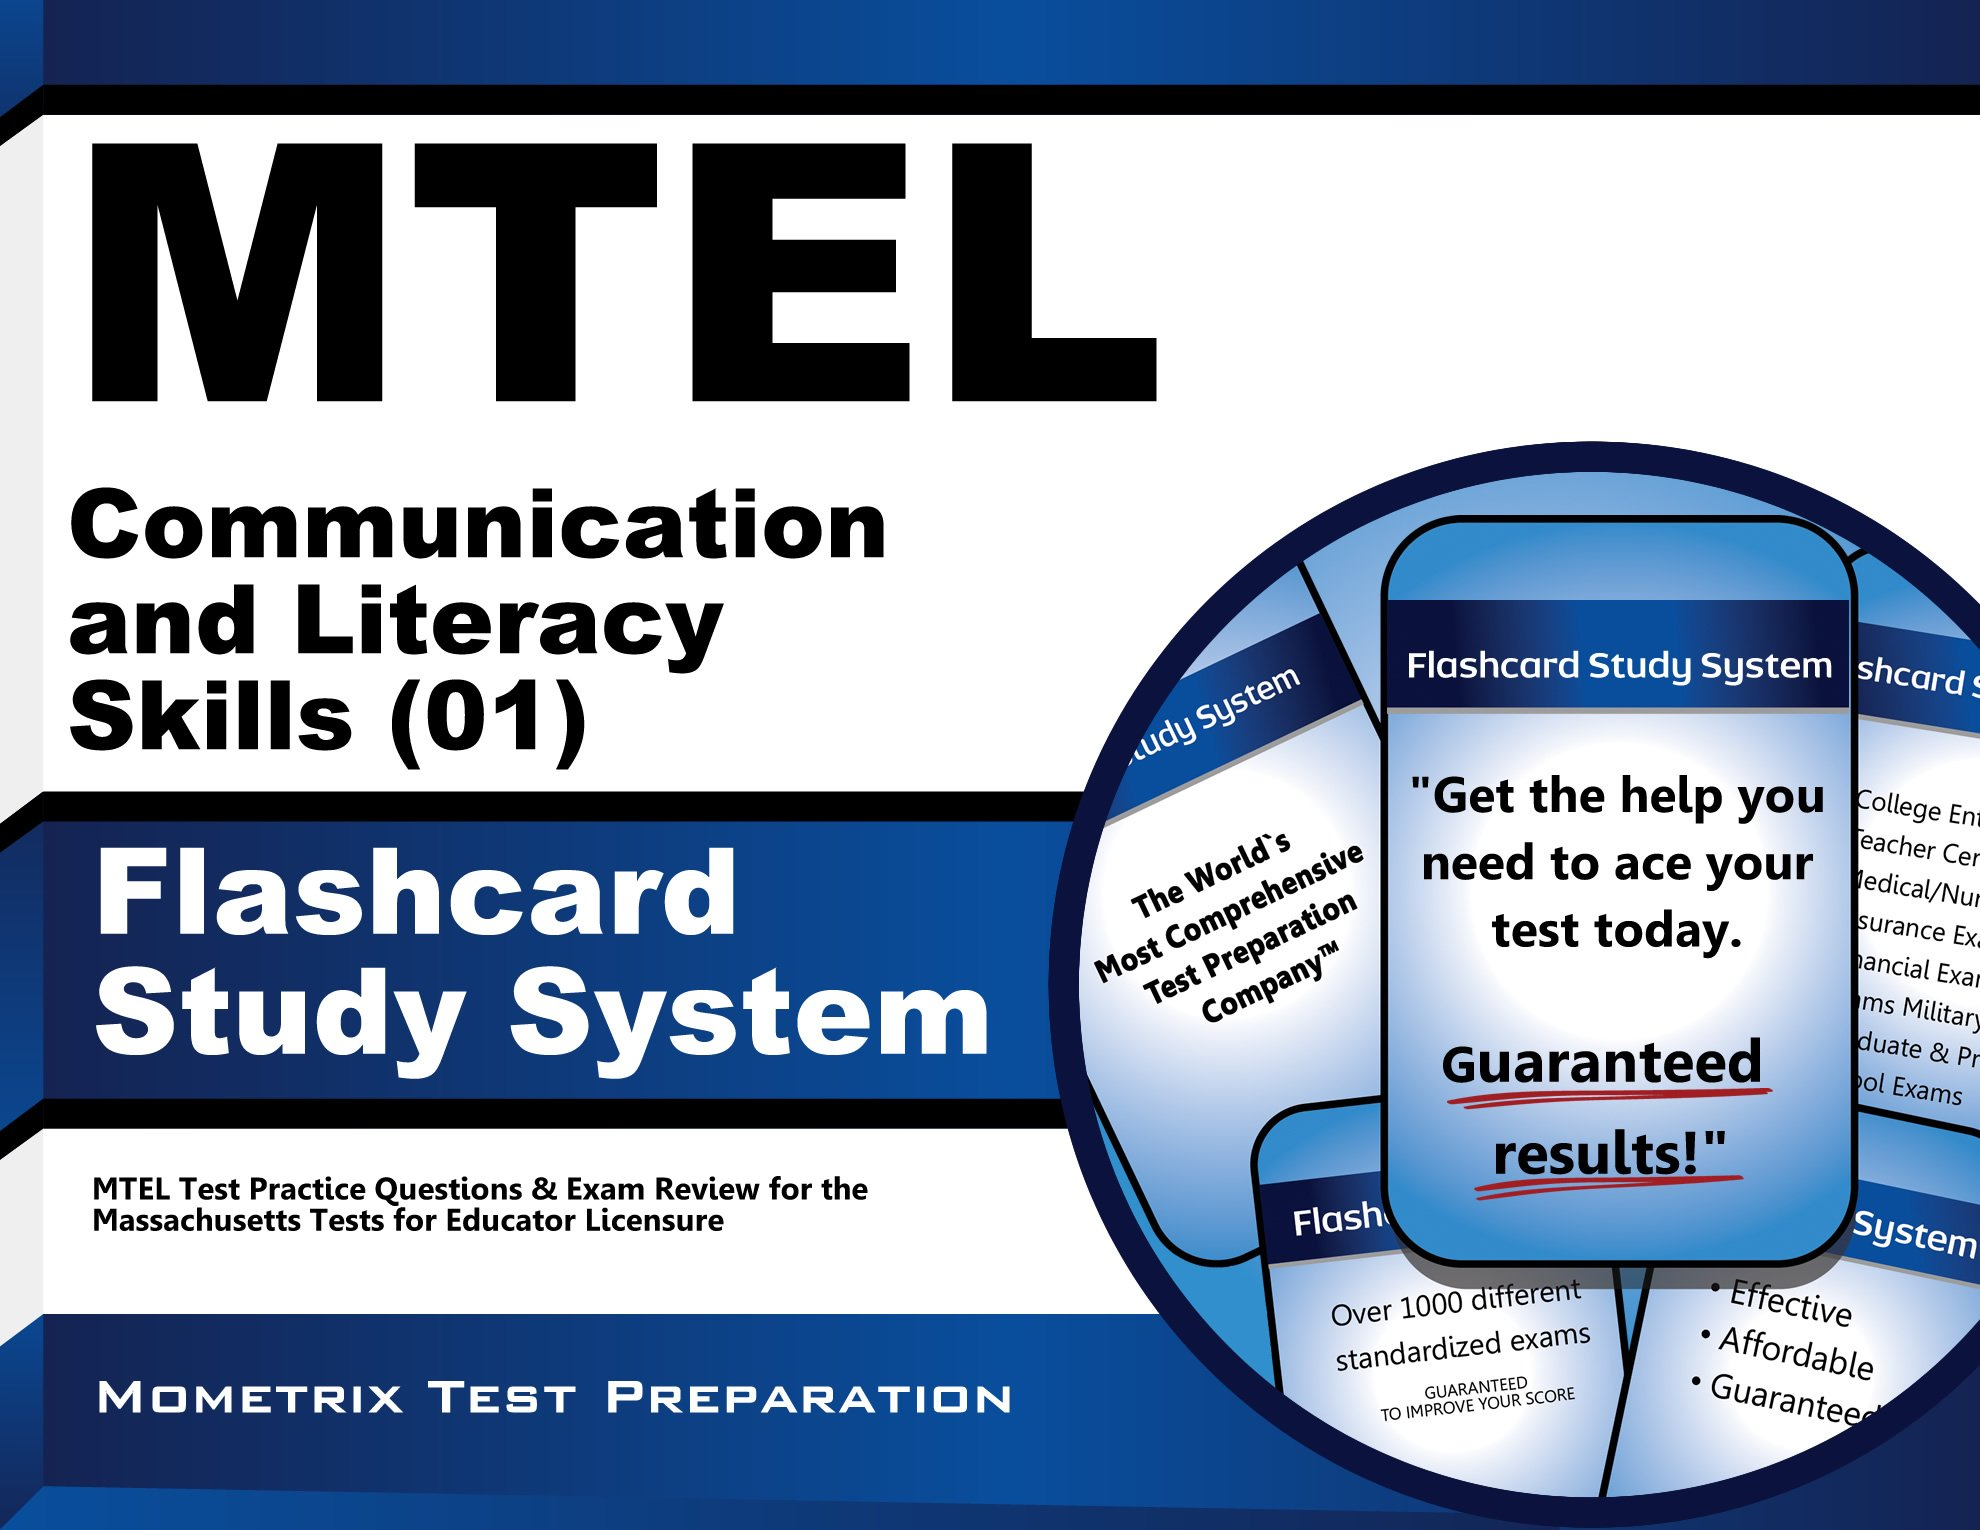 MTEL Communication and Literacy Skills (01) Flashcard Study System: MTEL Test Practice Questions & Exam Review for the Massachusetts Tests for Educator Licensure pdf